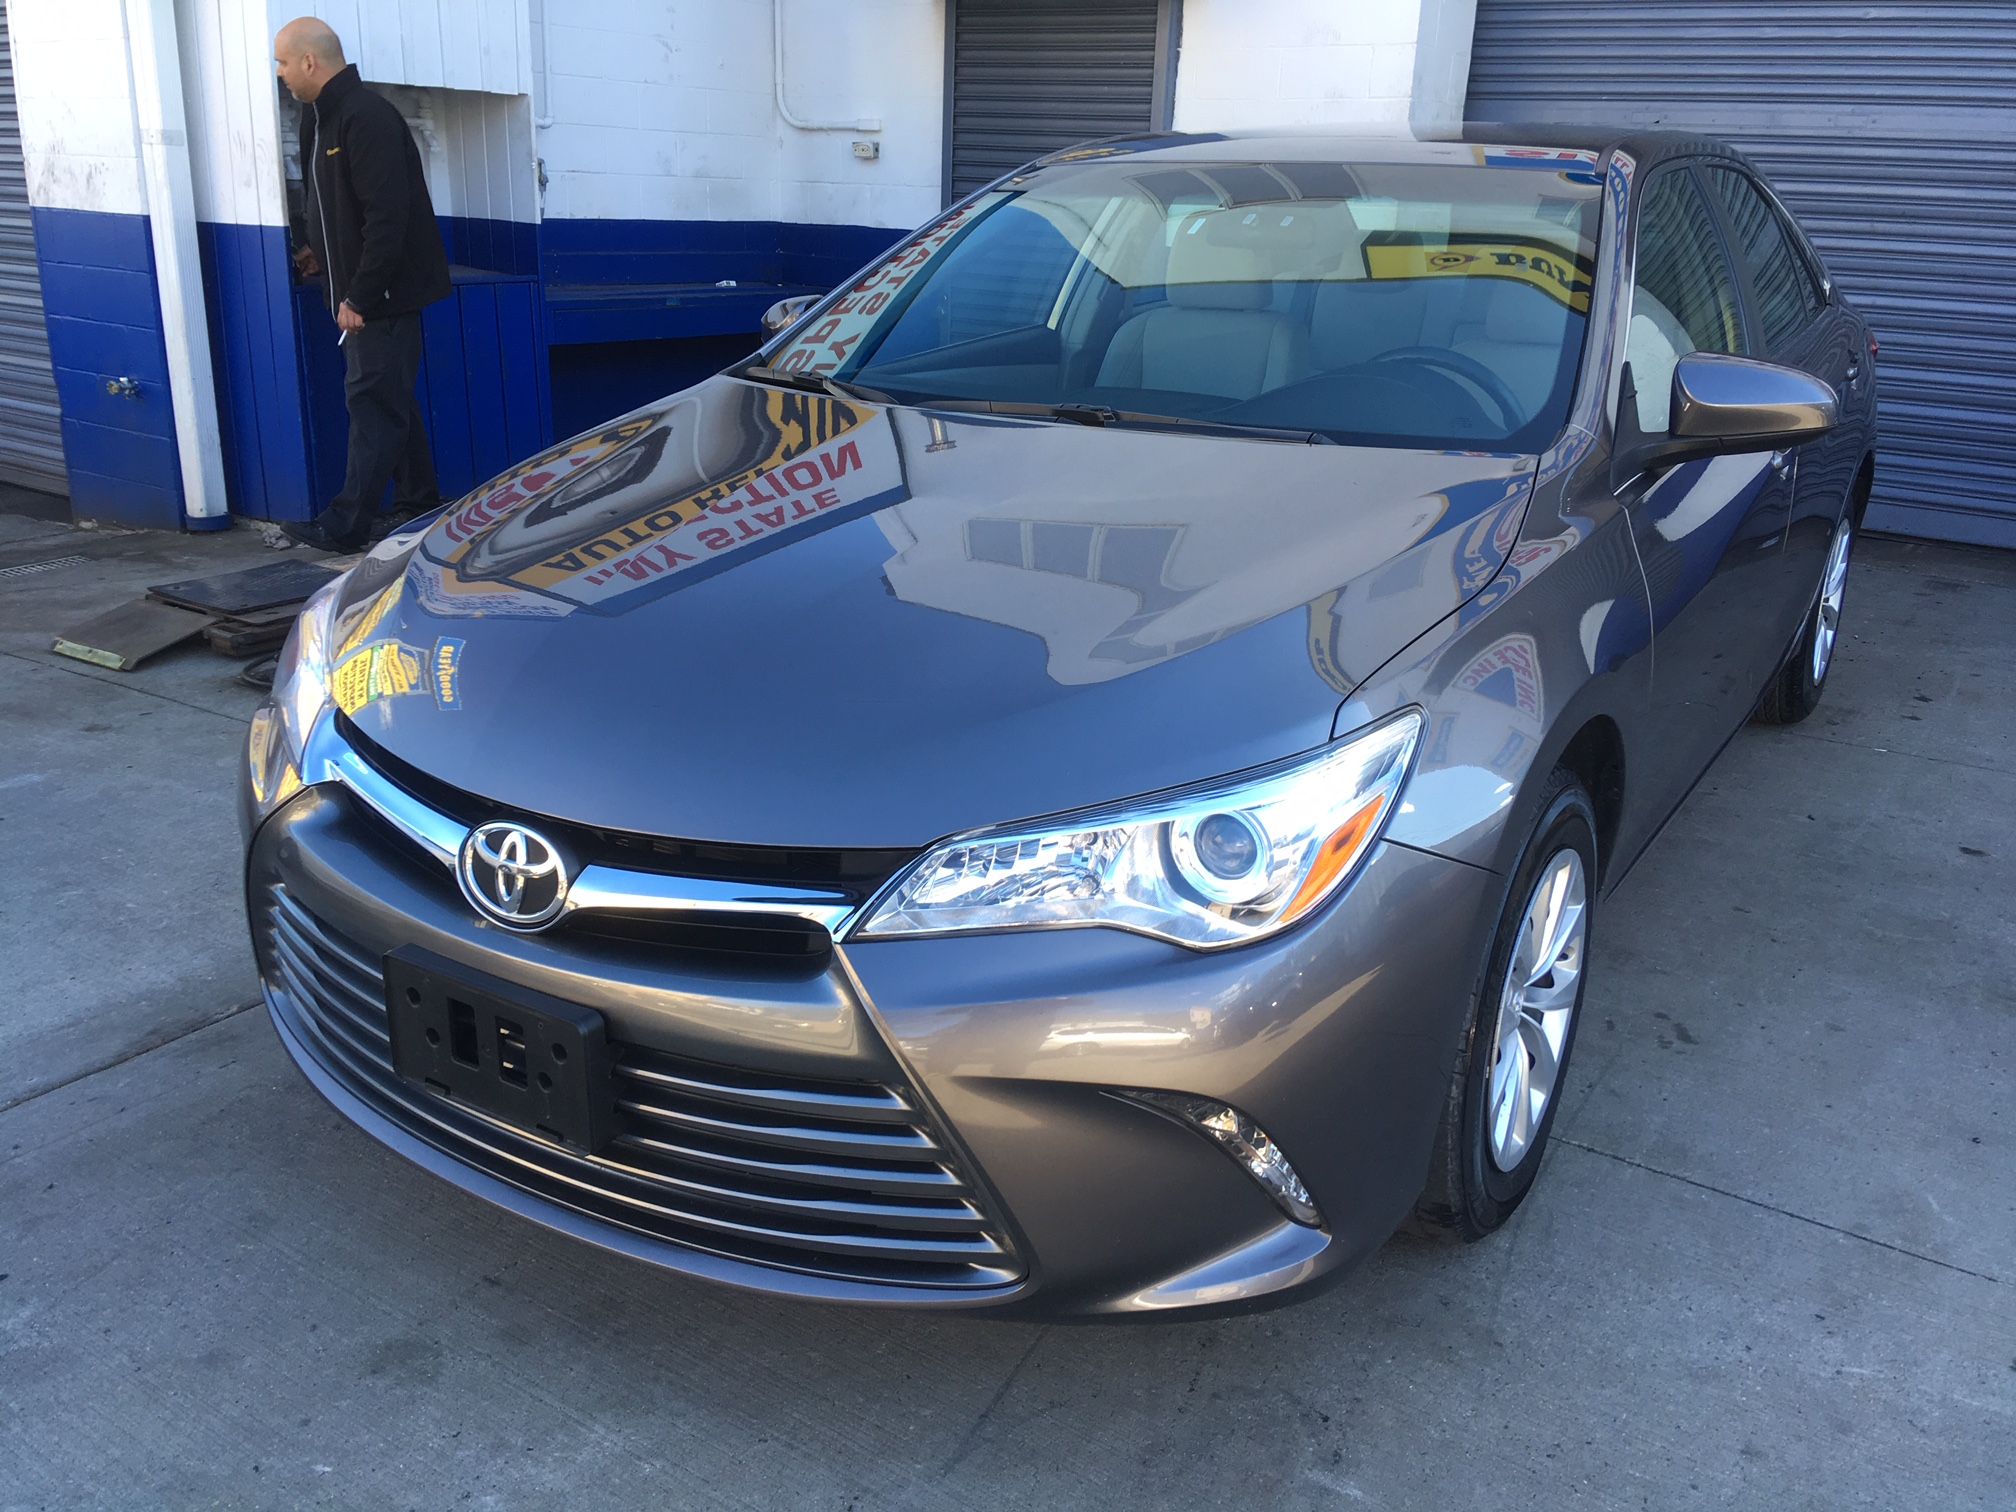 Used Car for sale - 2017 Camry LE Toyota  in Staten Island, NY